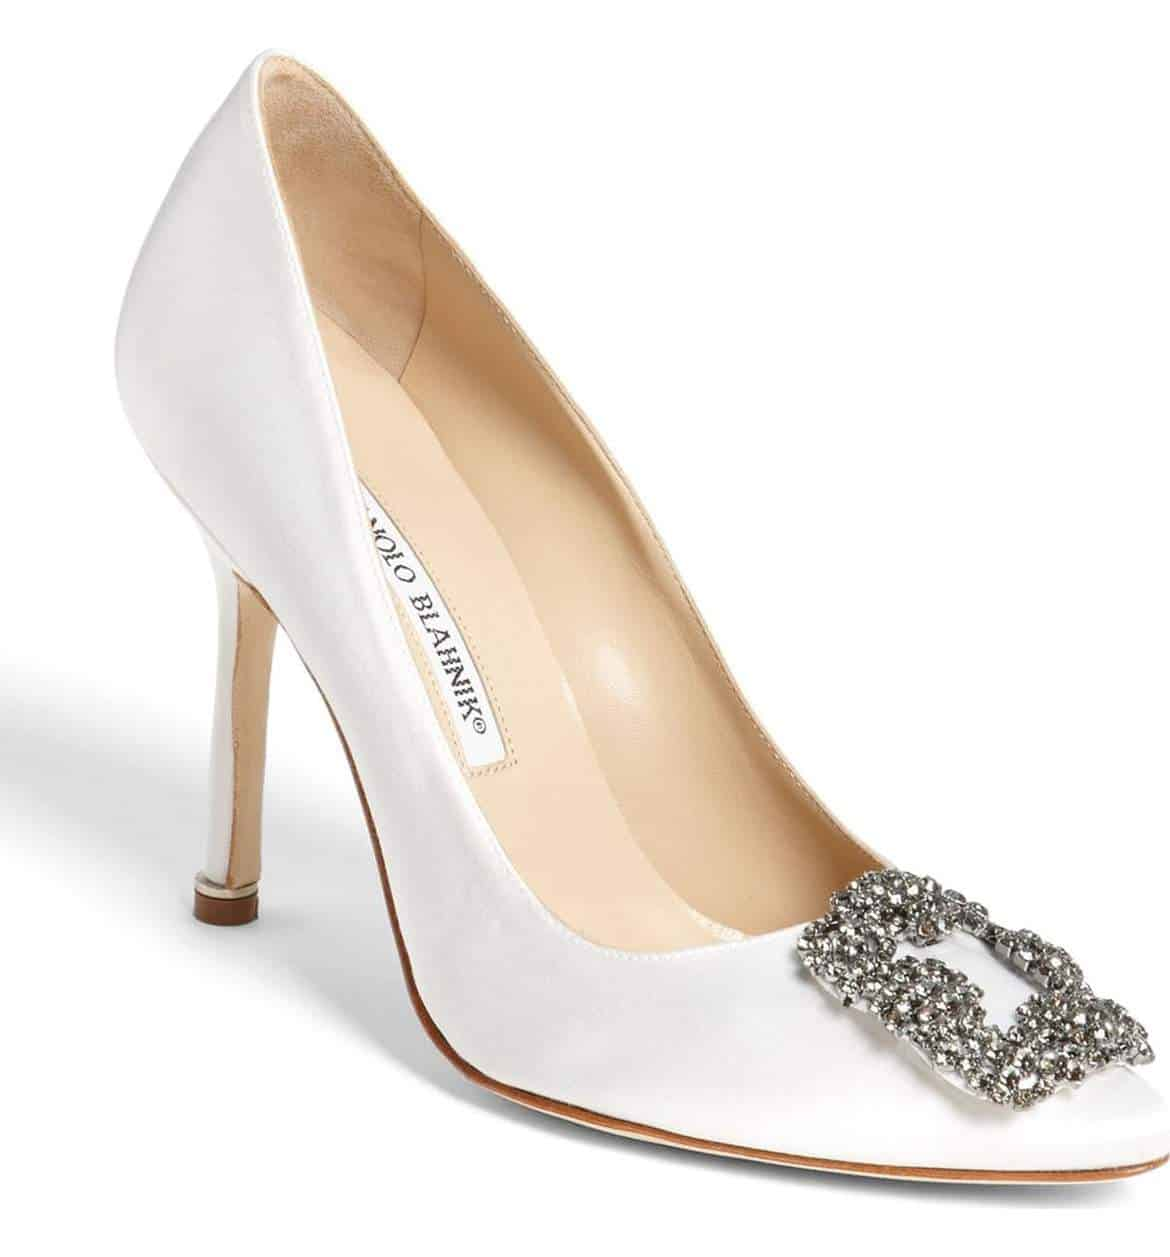 Manolo blahnik wedding shoes images wedding dress for Shoe designer manolo blahnik